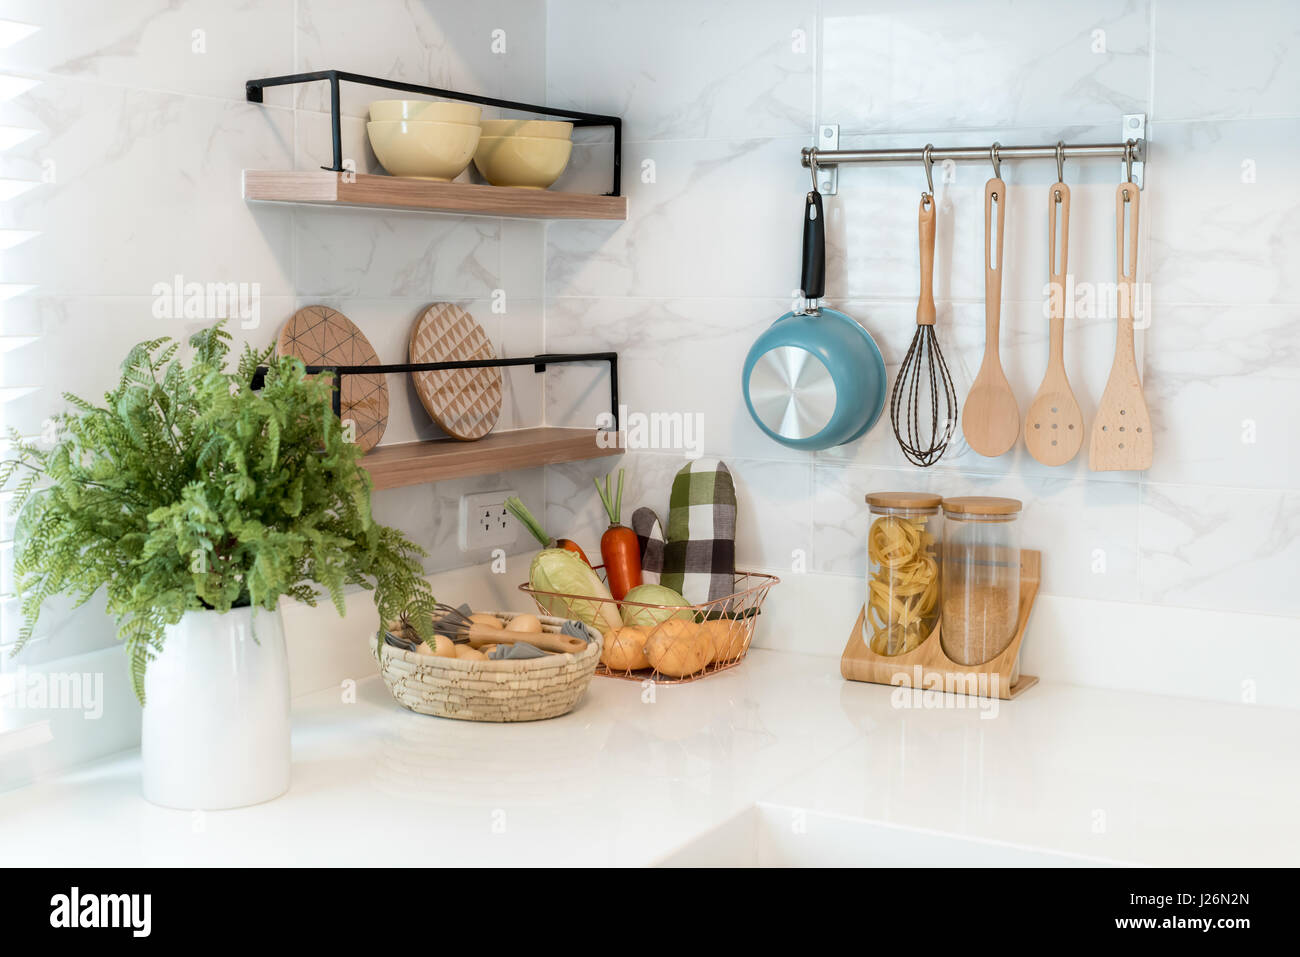 Kitchen wood utensils, chef accessories. Hanging copper kitchen with white tiles wall. - Stock Image